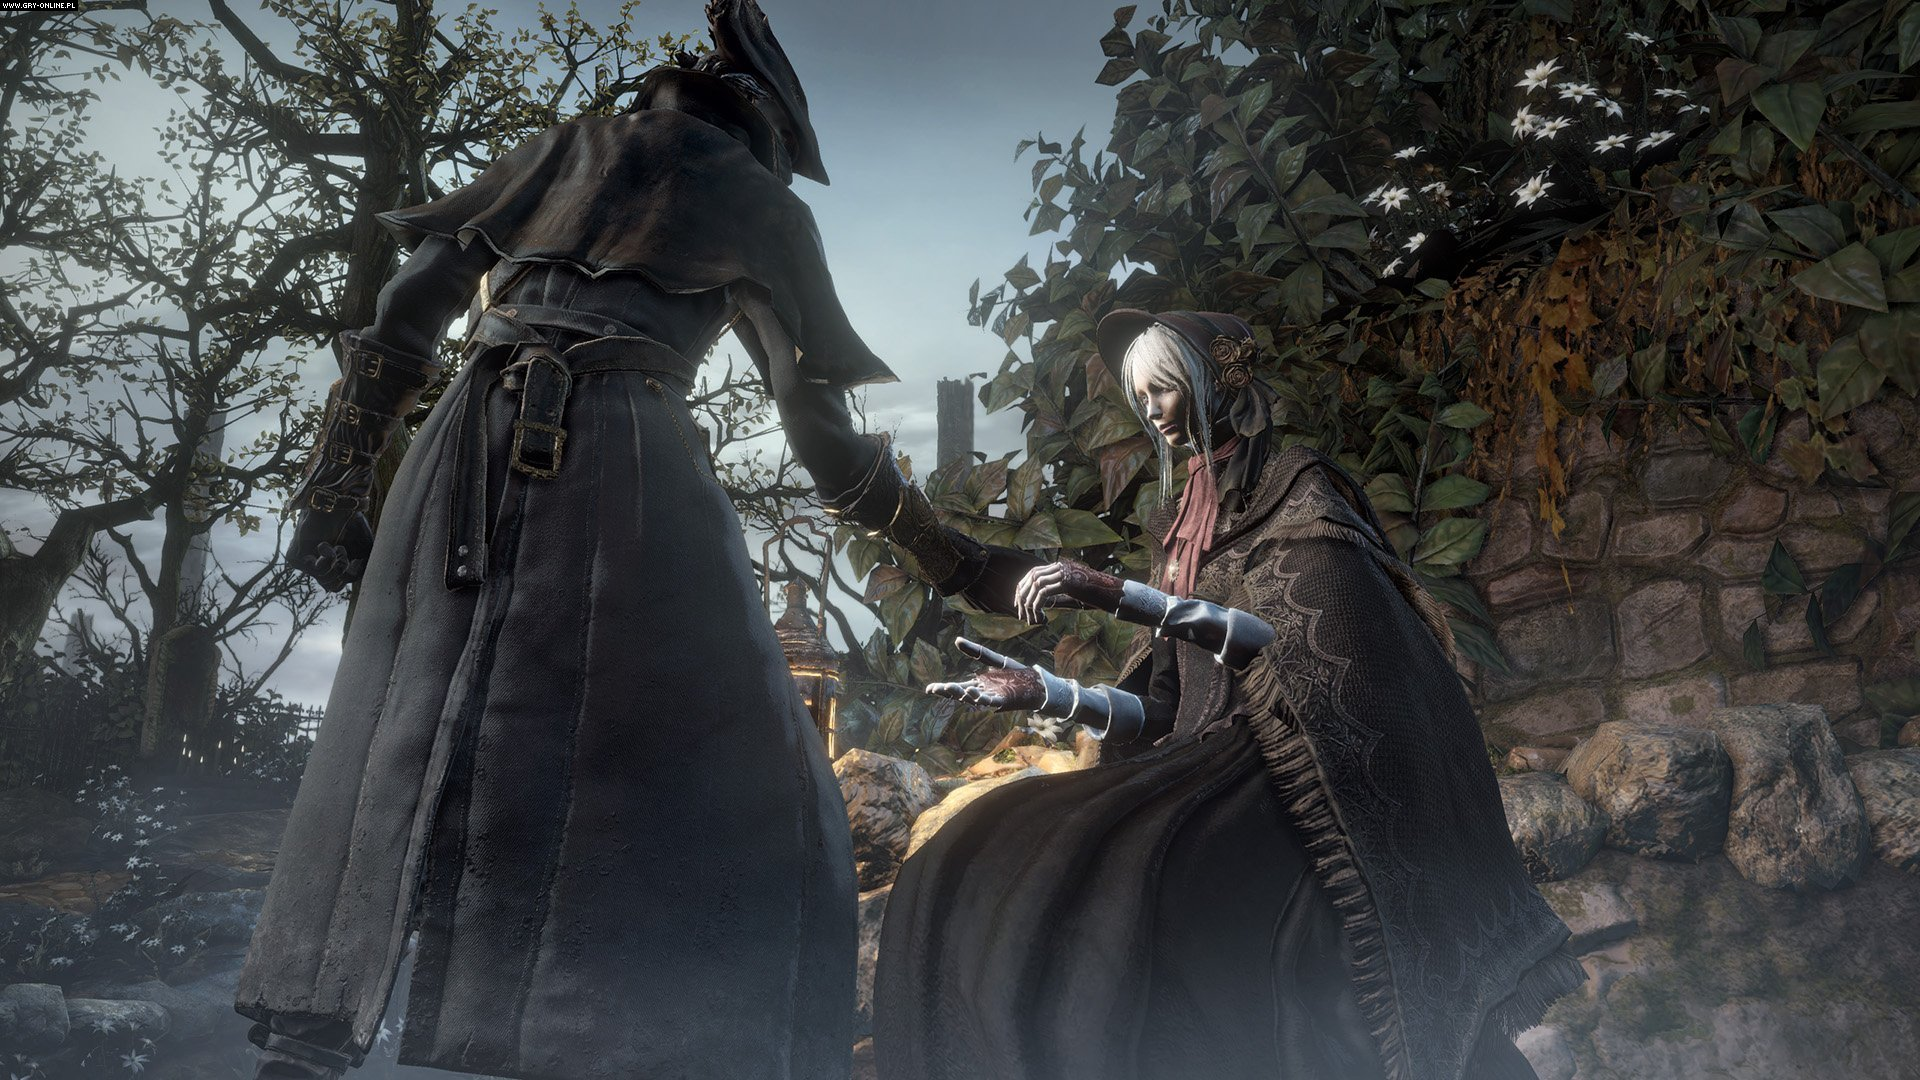 Bloodborne PS4 Games Image 3/76, FromSoftware, Sony Interactive Entertainment